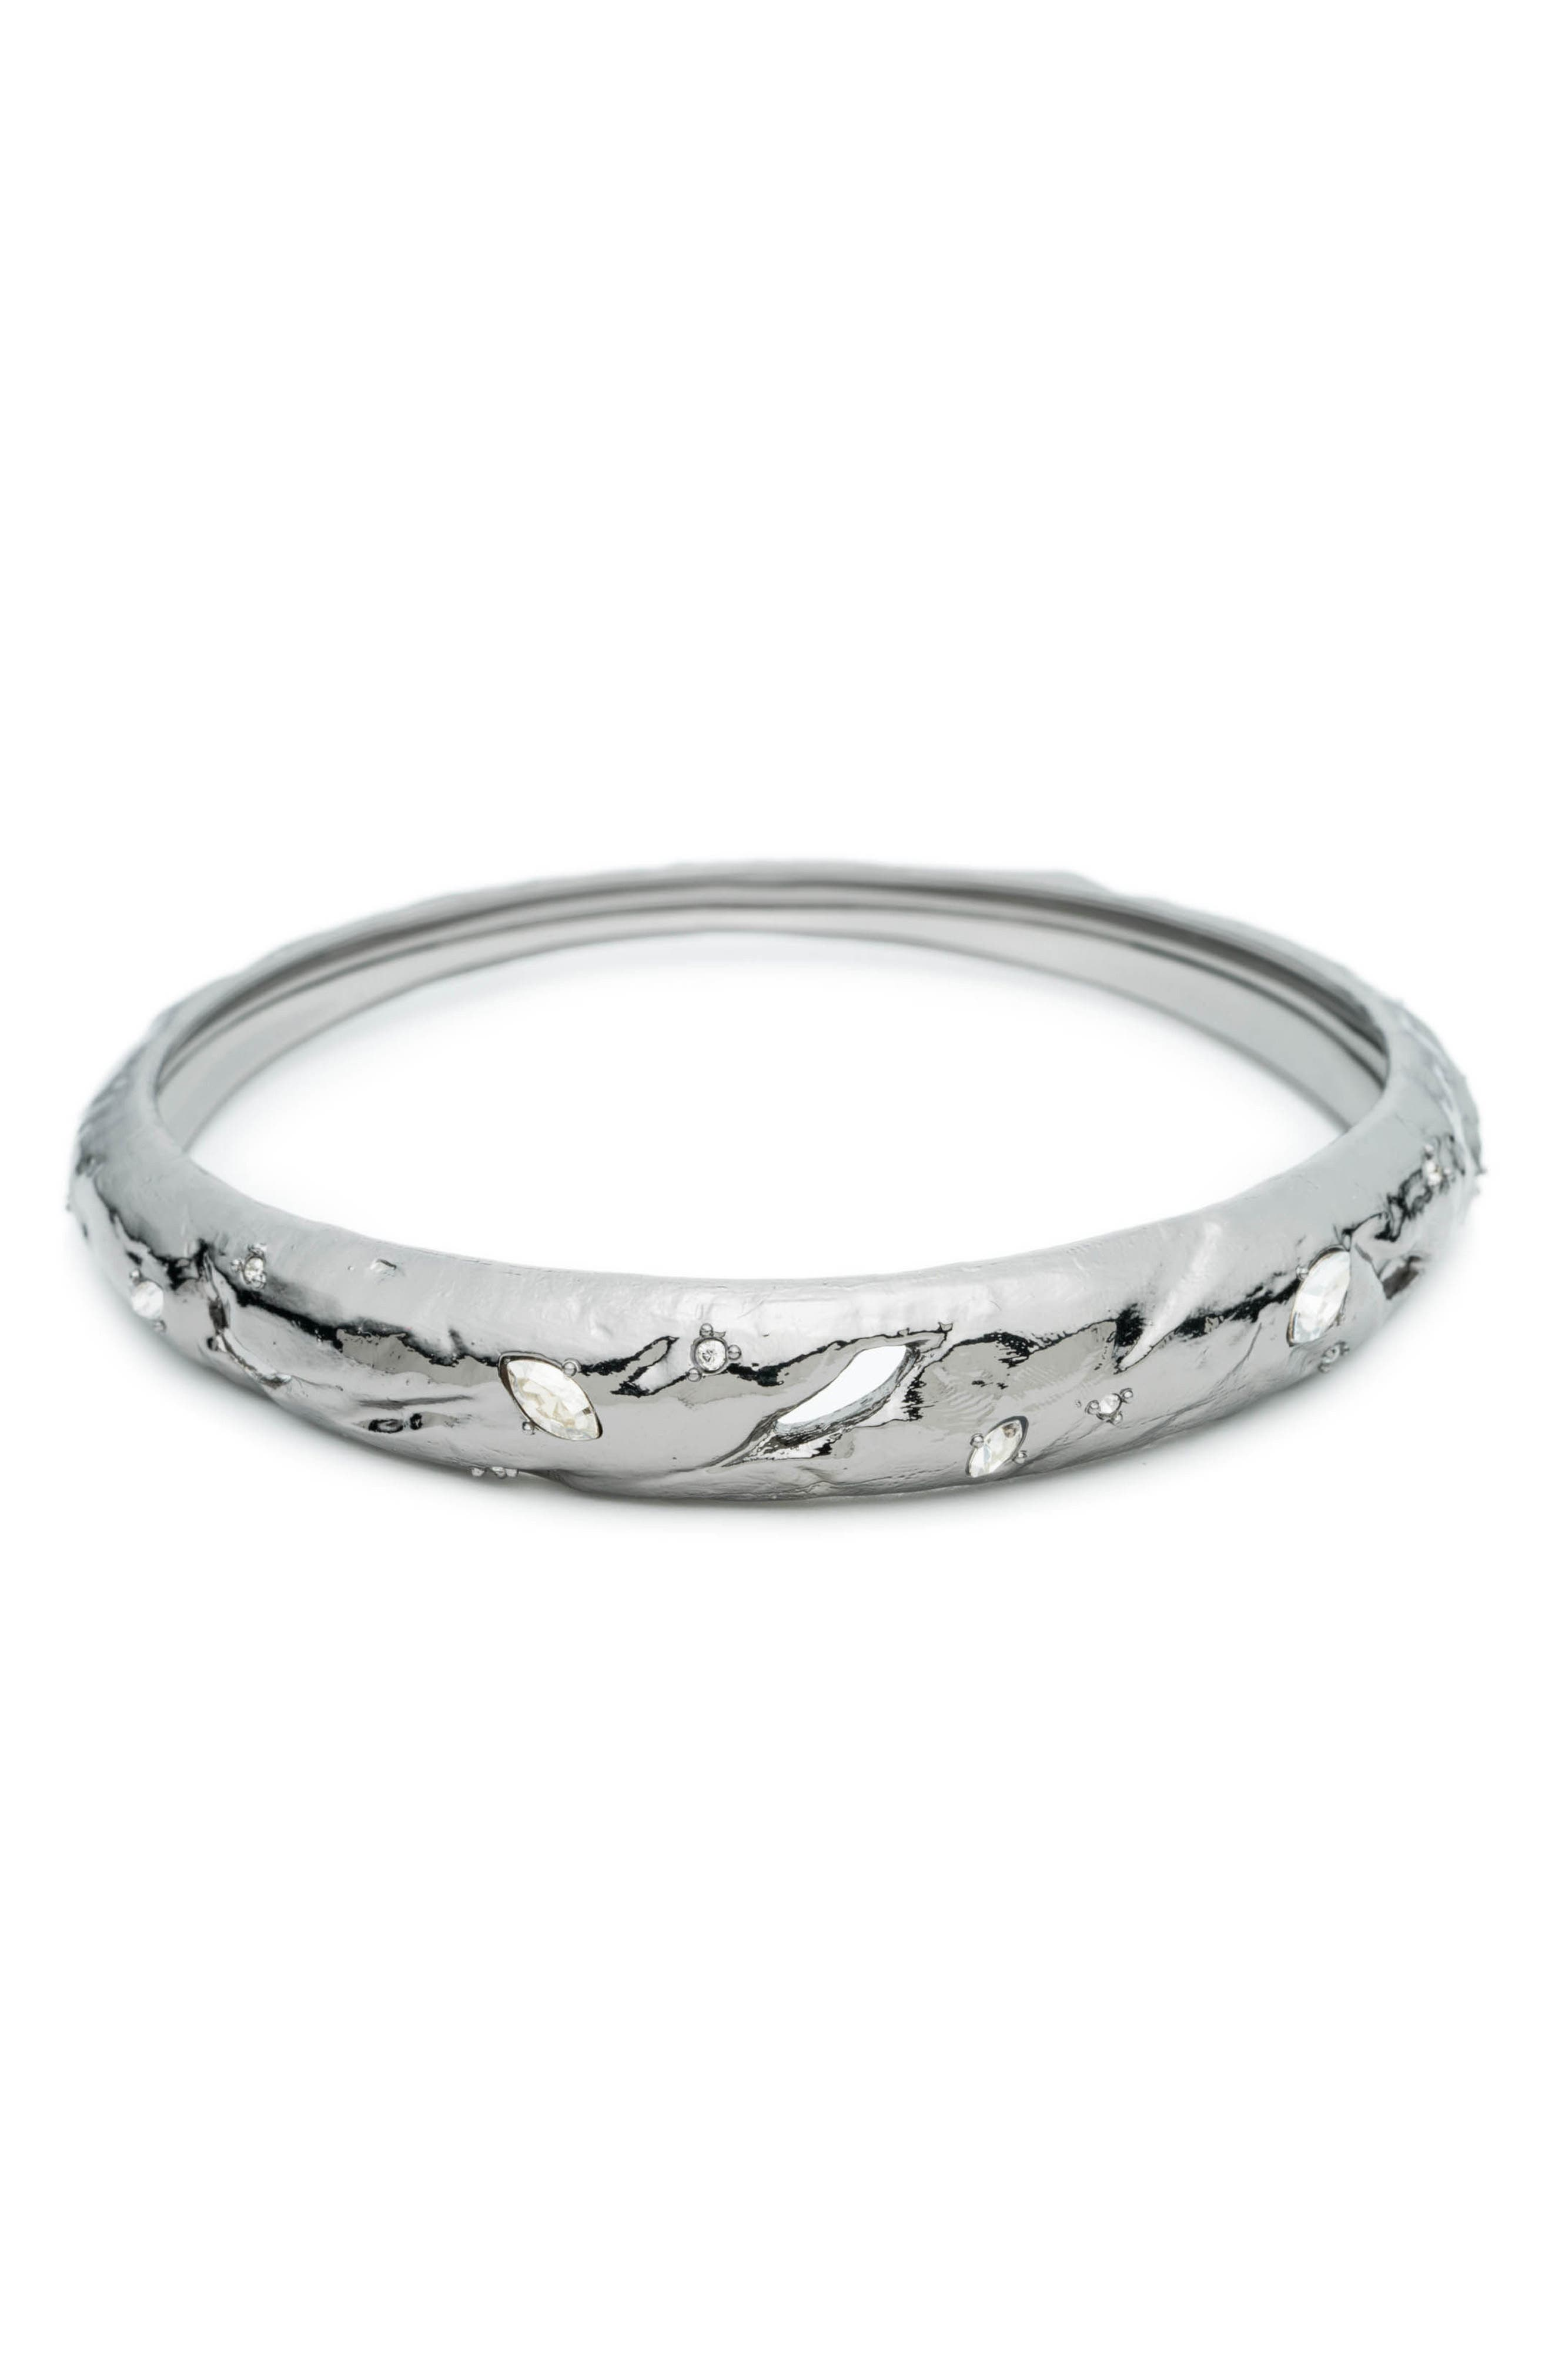 Crystal Elements Bangle,                         Main,                         color, SILVER